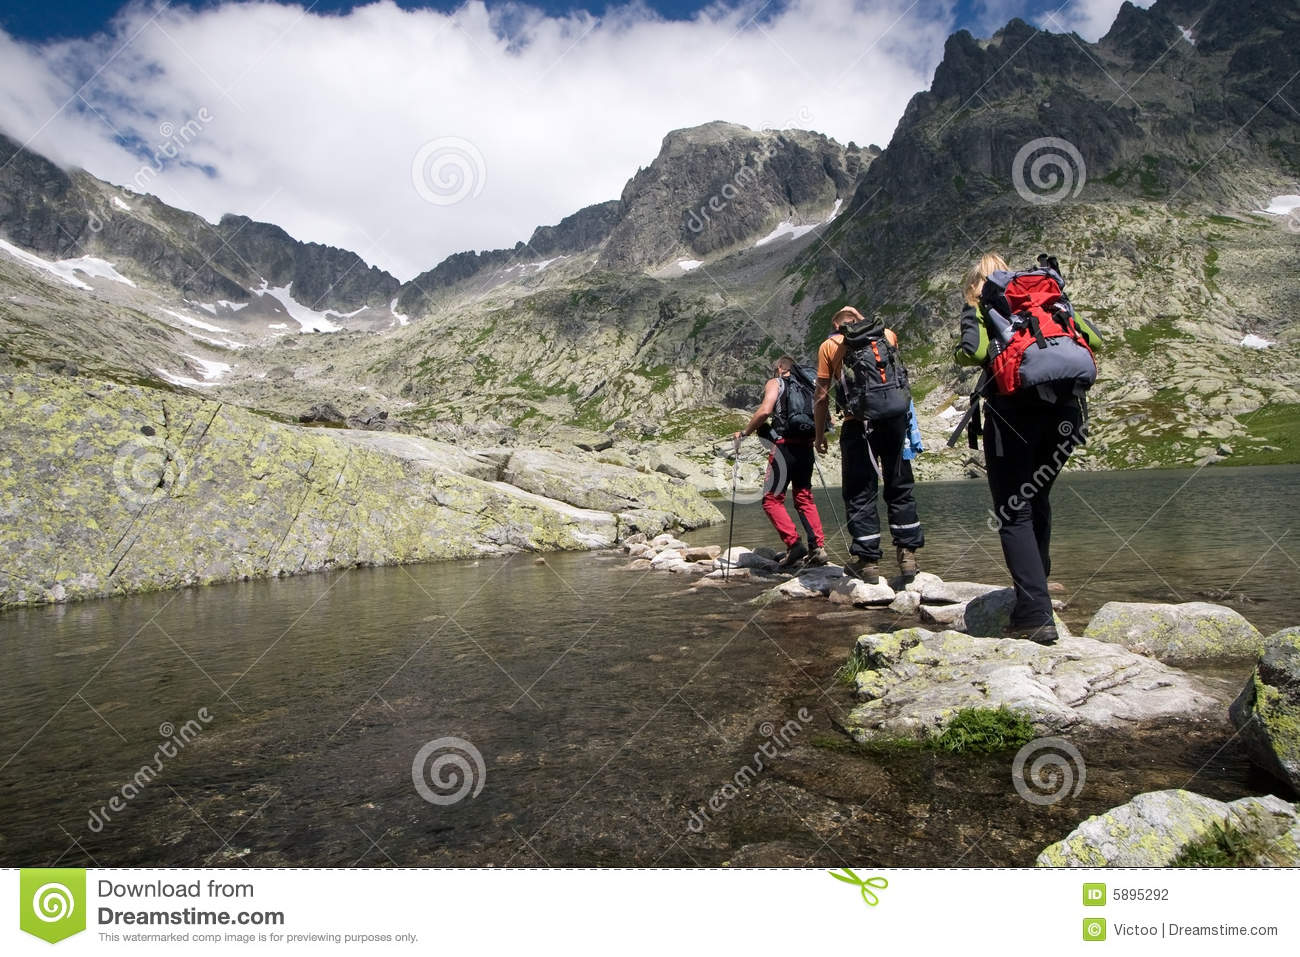 Hiking in high mountains